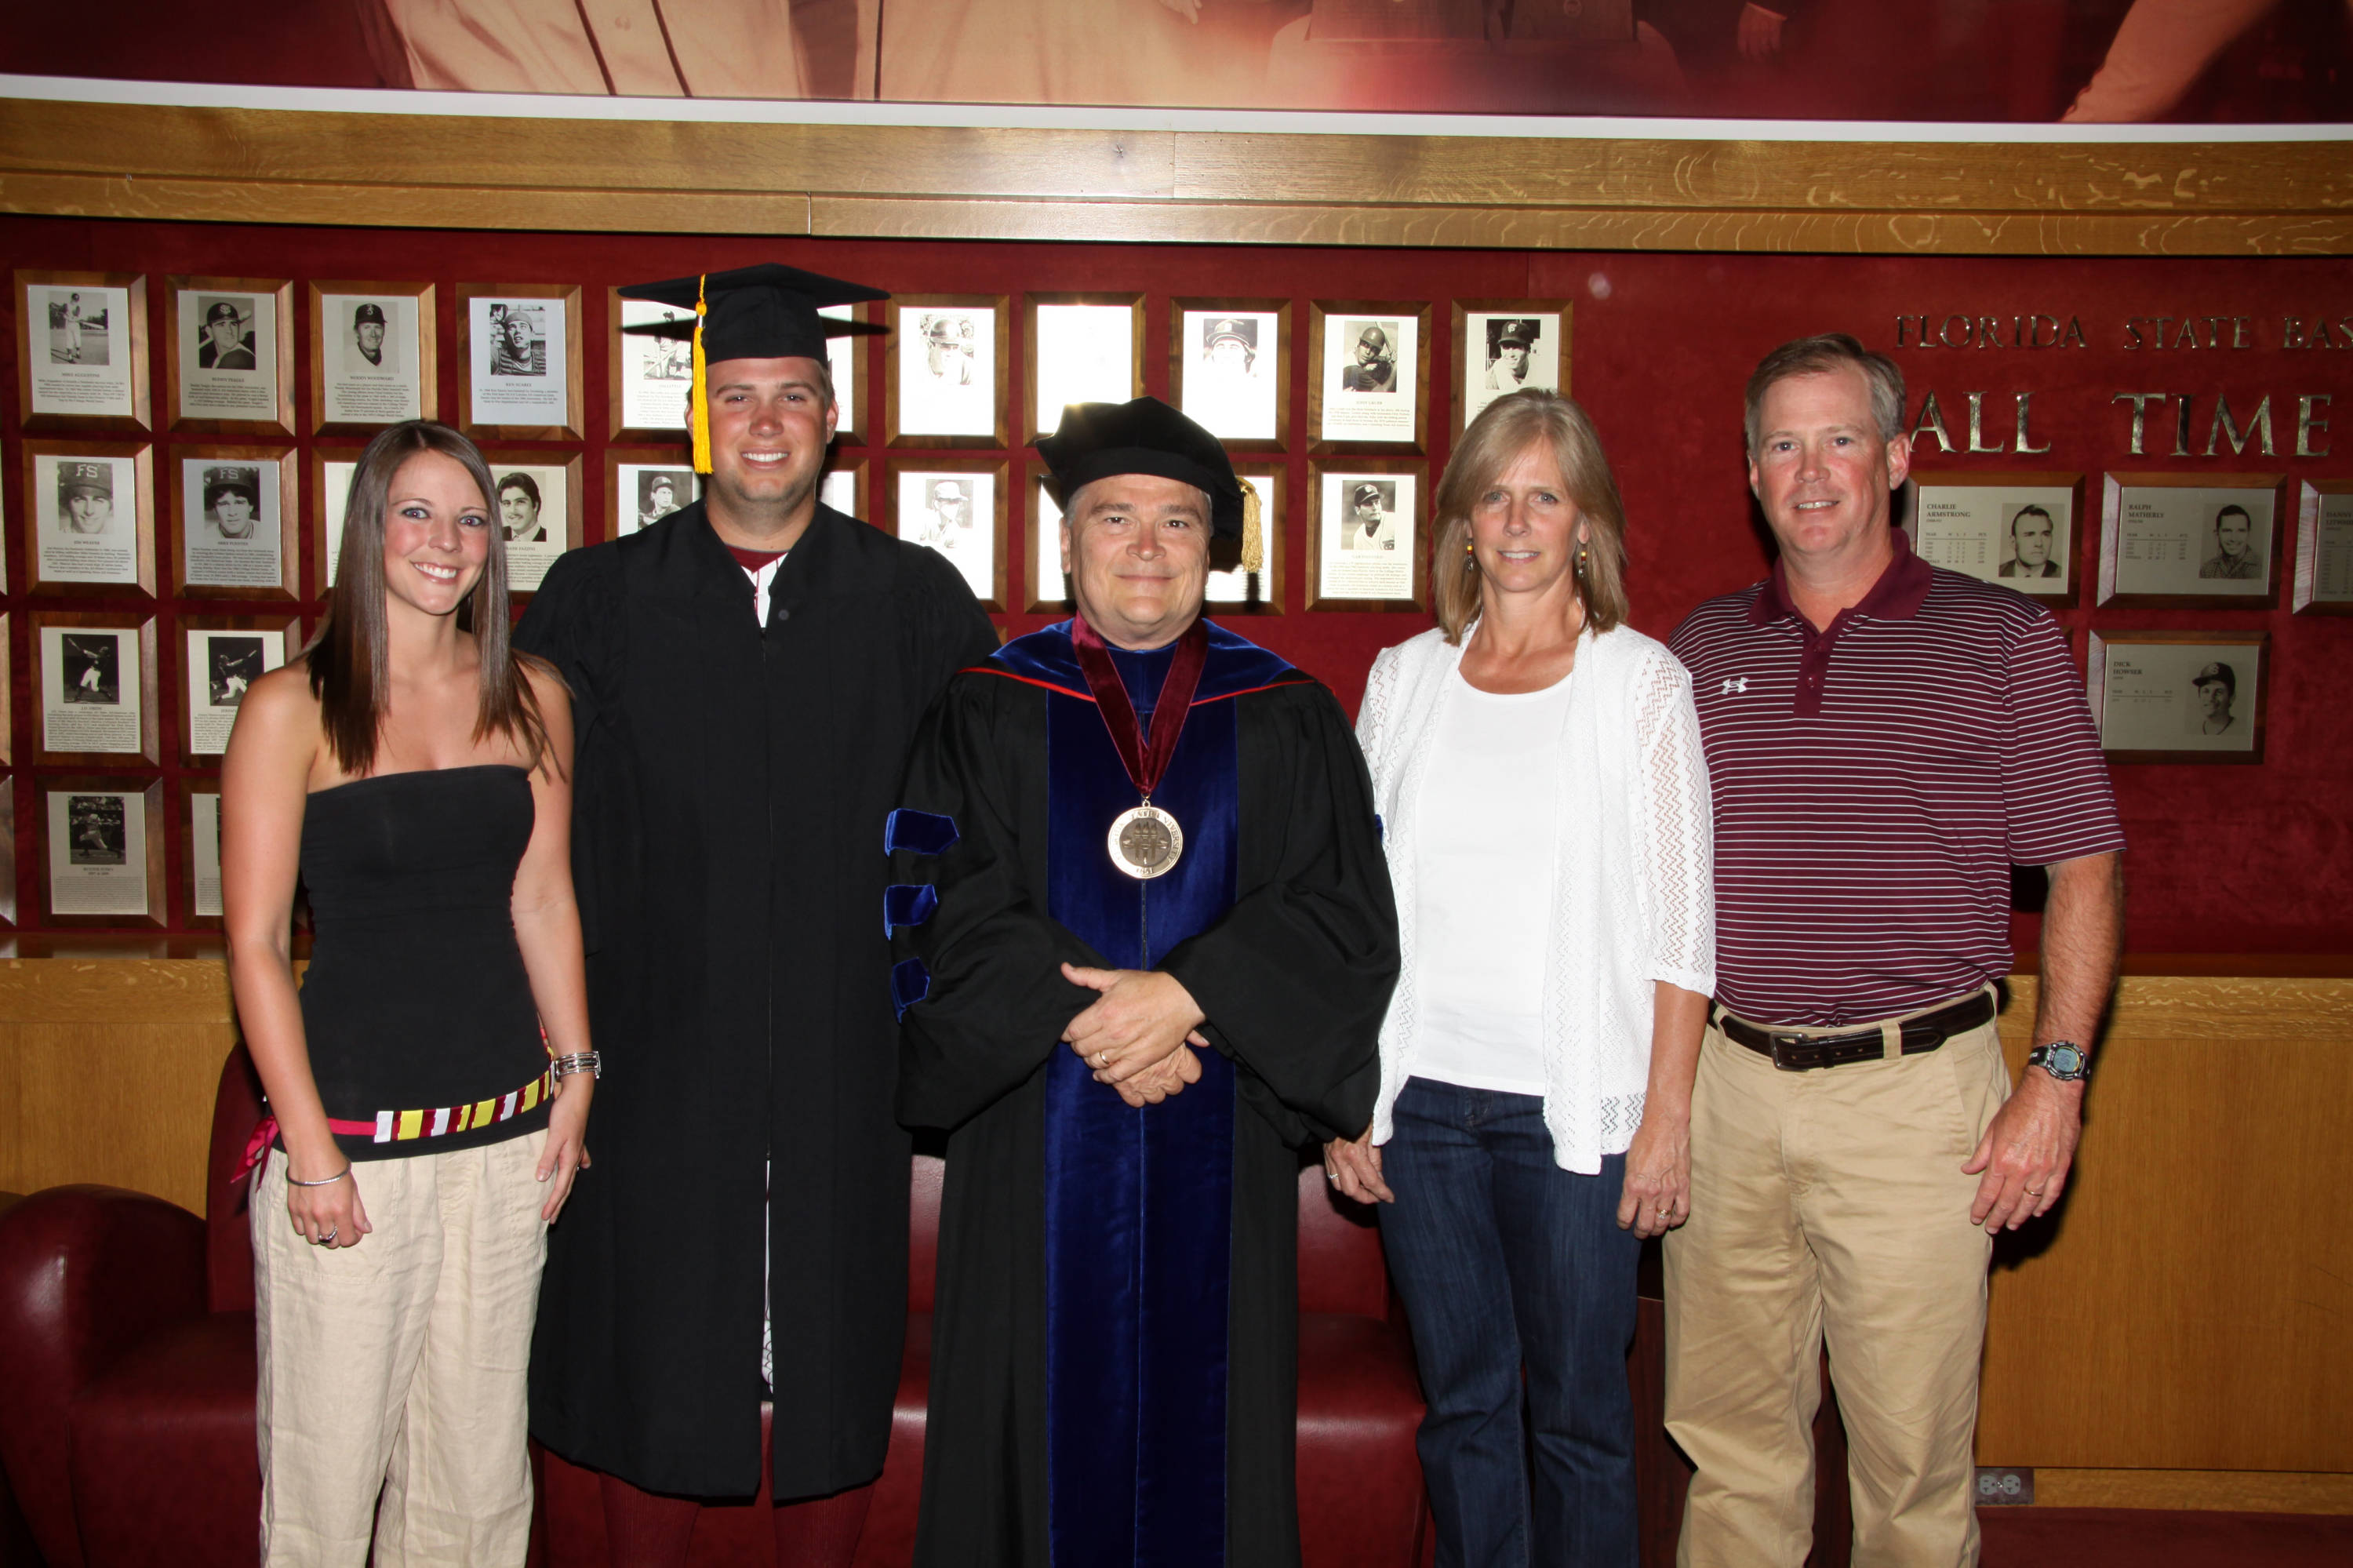 2011 Spring Graduation Ceremony held at Dick Howser Stadium to honor the graduating baseball seniors. Jack Posey (5) with family and President Barron